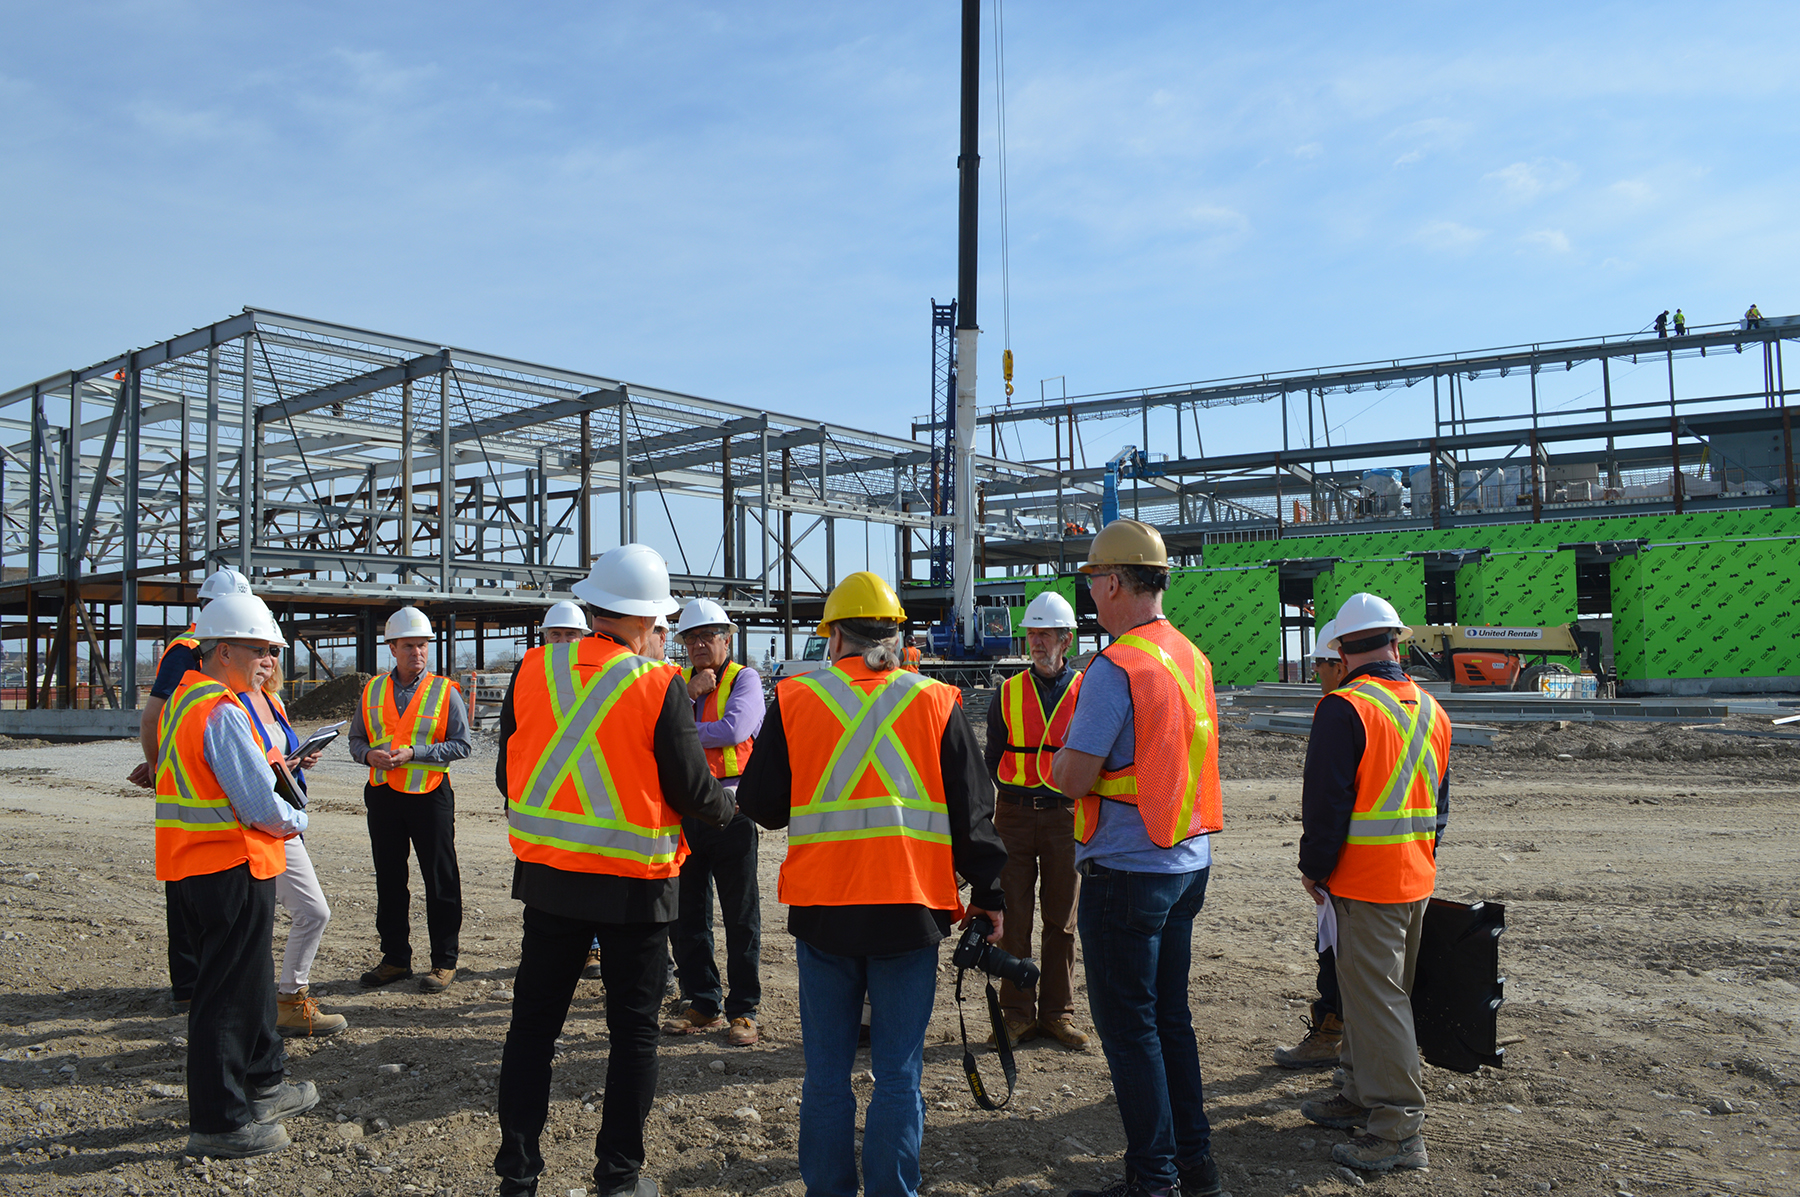 Group of people standing at Recreation Facility during site tour